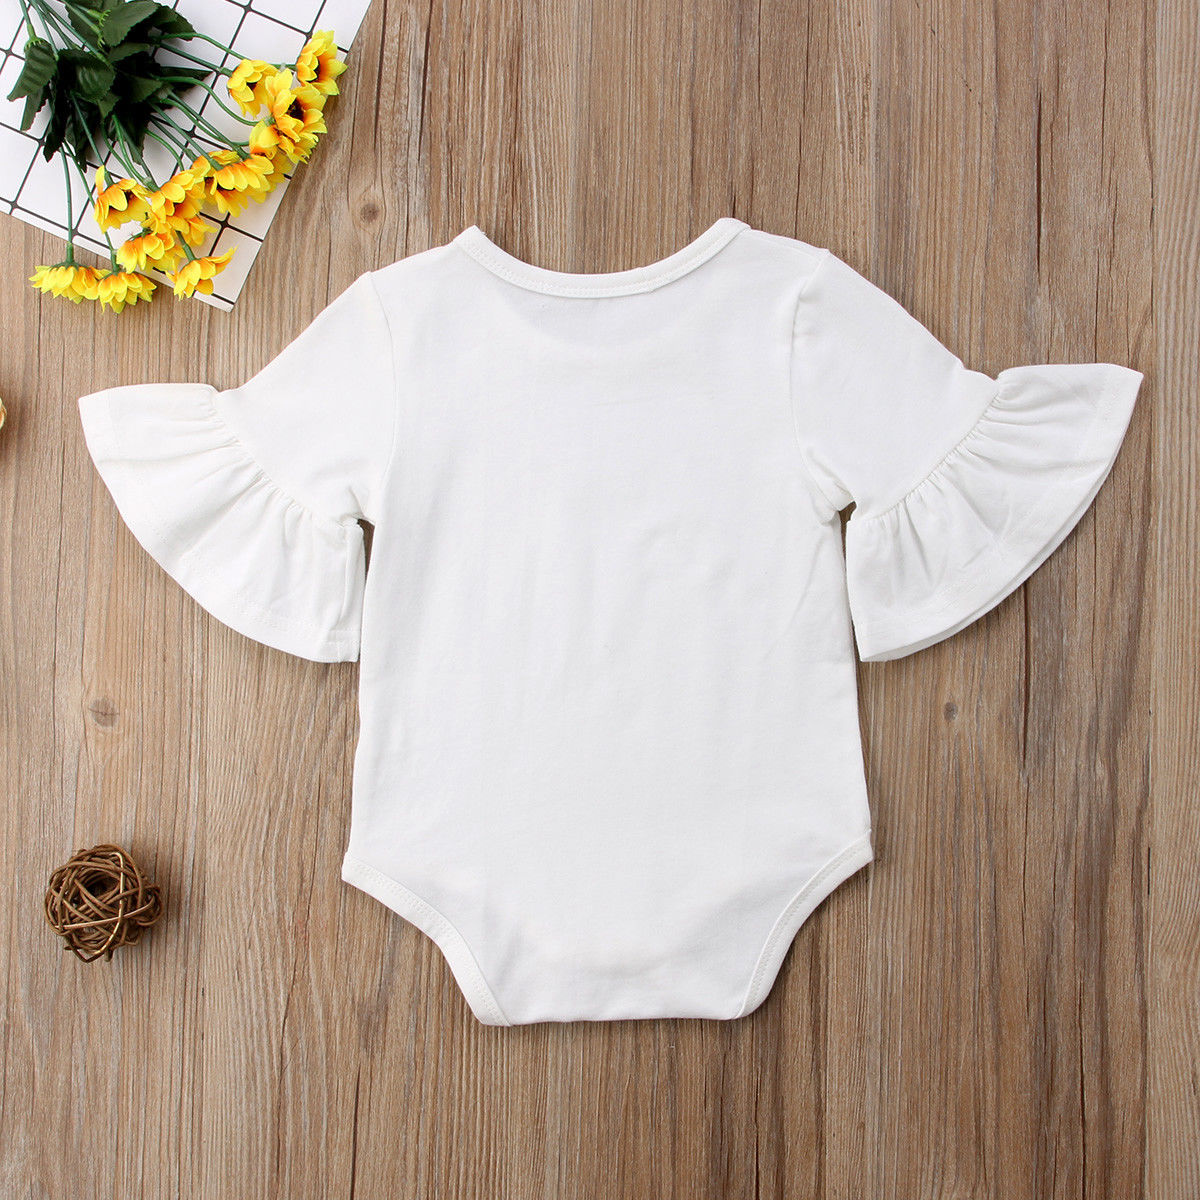 HTB1skdkMYPpK1RjSZFFq6y5PpXap 3 Color Newborn Infant Baby Girl Clothes Flared Sleeve Romper Brife Jumpsuit Sunsuit Outfits